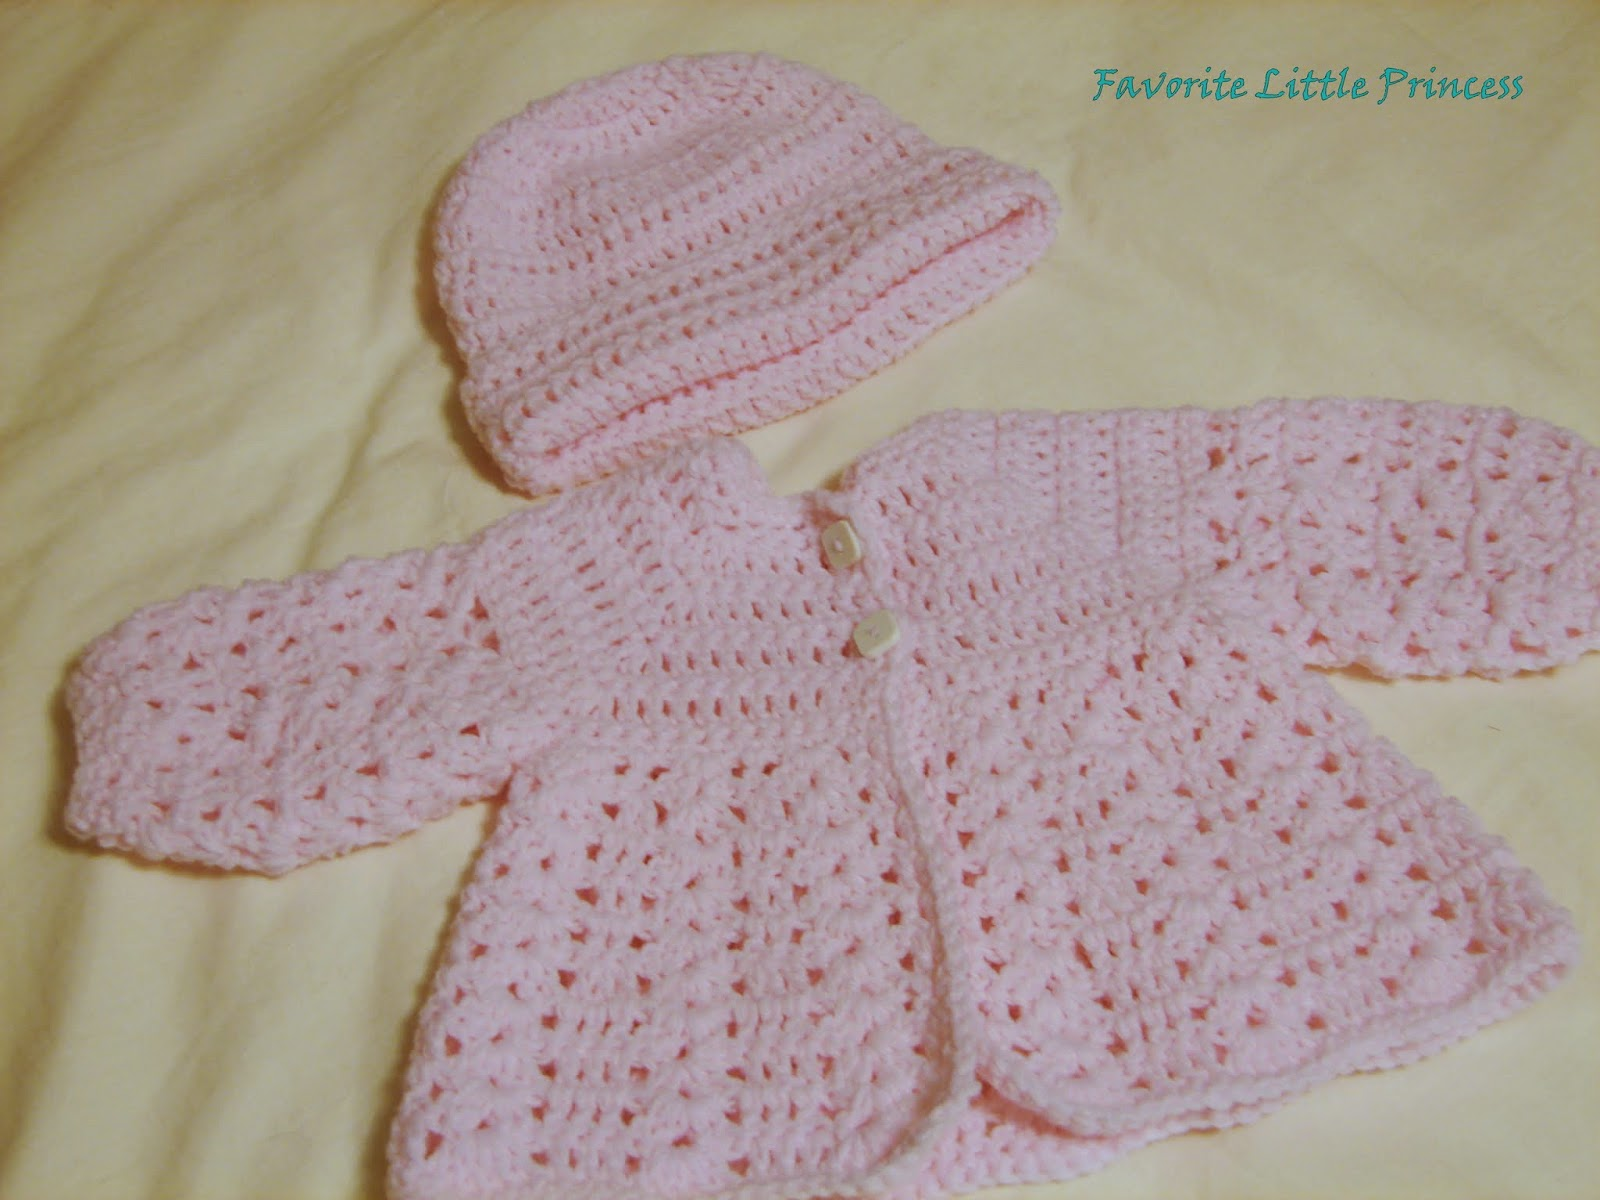 Free Crochet Pattern For Easy Baby Sweater : Favorite Little Princess: Easy Baby Sweater and Hat